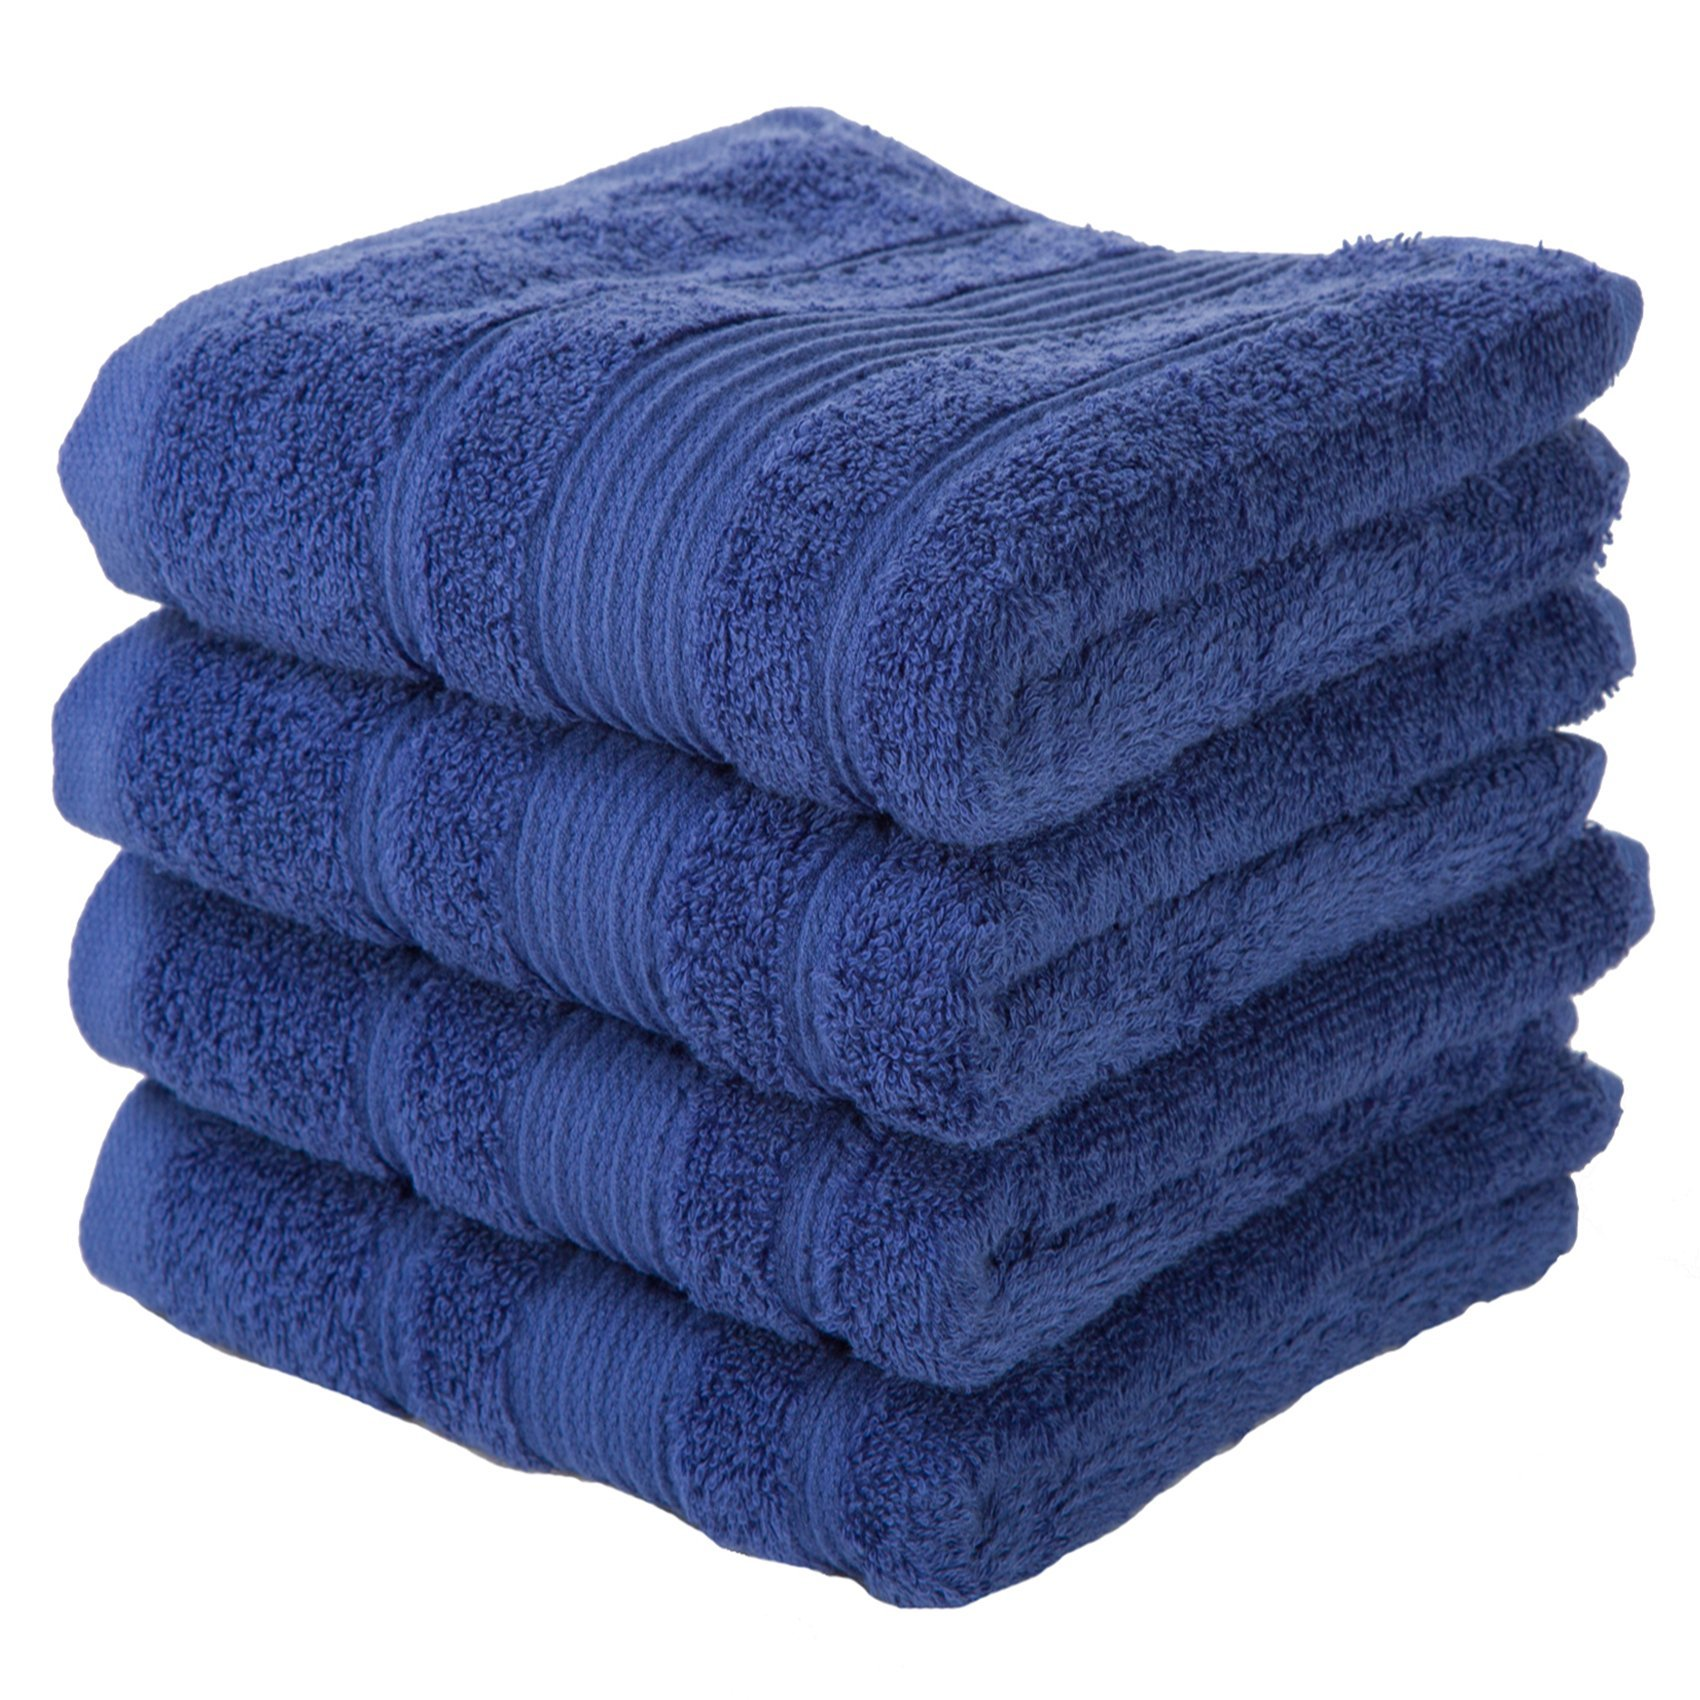 4 PACK Hand Towels Set | Premium Quality Luxury Turkish Cotton Absorbent AND Super Soft - NAVY BLUE